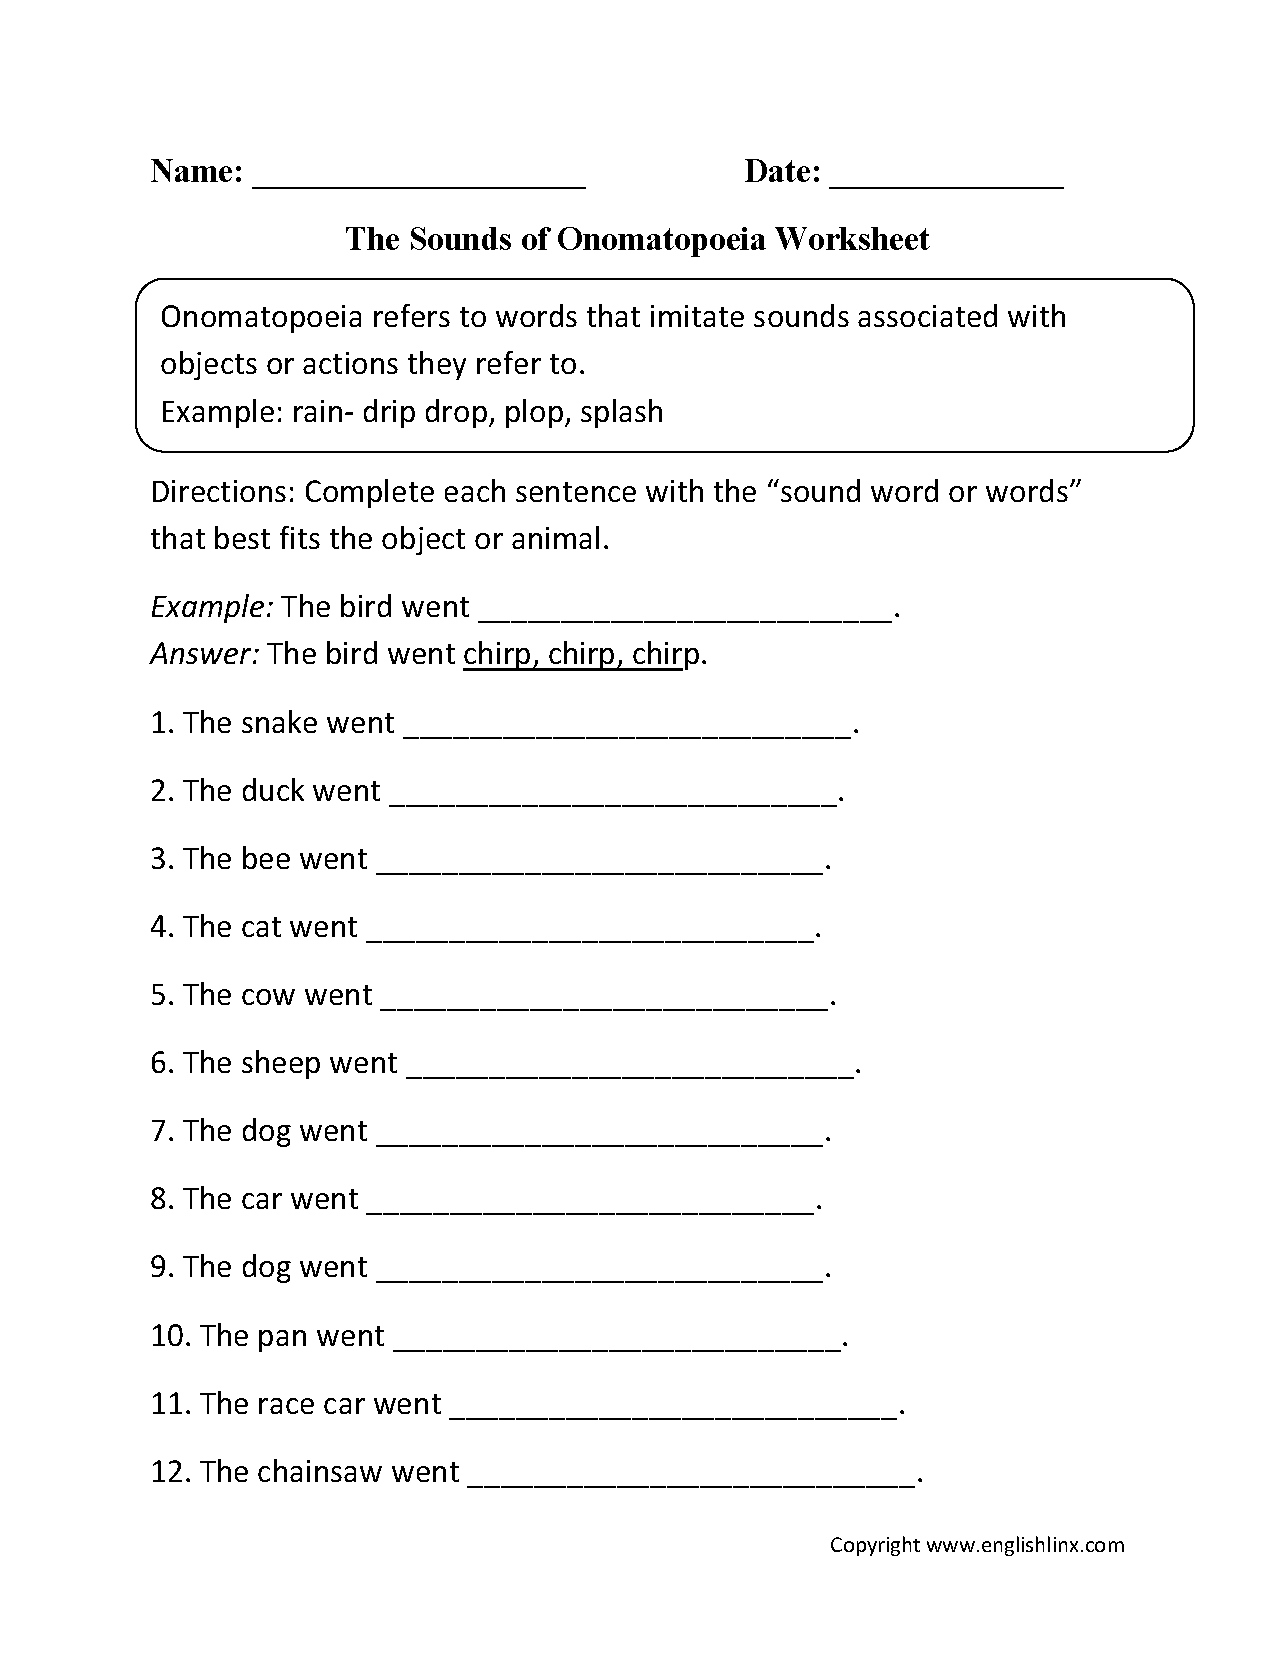 Aldiablosus  Unusual Englishlinxcom  Onomatopoeia Worksheets With Exciting Worksheet With Enchanting Word Order In English Sentences Worksheets Also Periodic Trend Worksheet In Addition Word Problems For Th Grade Worksheets And Free Printable Abeka Worksheets As Well As Writing Chemical Formulas Practice Worksheet Additionally Timeline Worksheets For Th Grade From Englishlinxcom With Aldiablosus  Exciting Englishlinxcom  Onomatopoeia Worksheets With Enchanting Worksheet And Unusual Word Order In English Sentences Worksheets Also Periodic Trend Worksheet In Addition Word Problems For Th Grade Worksheets From Englishlinxcom